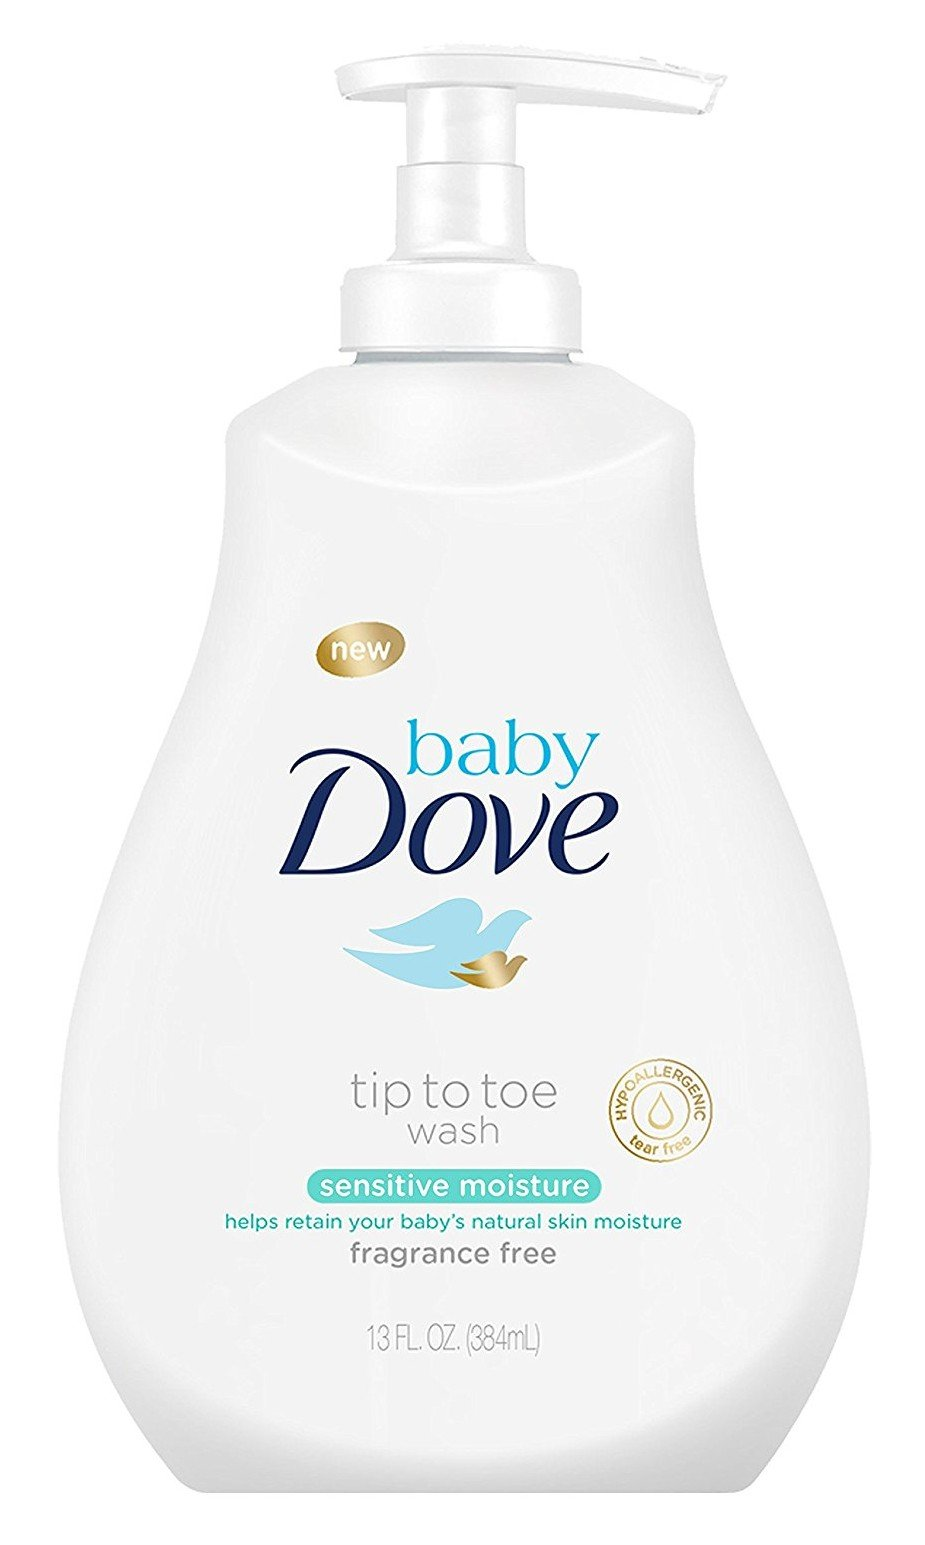 Dove Baby Tip To Toe Wash 13 Ounce Sensitive Pump (384ml) (2 Pack) by Dove